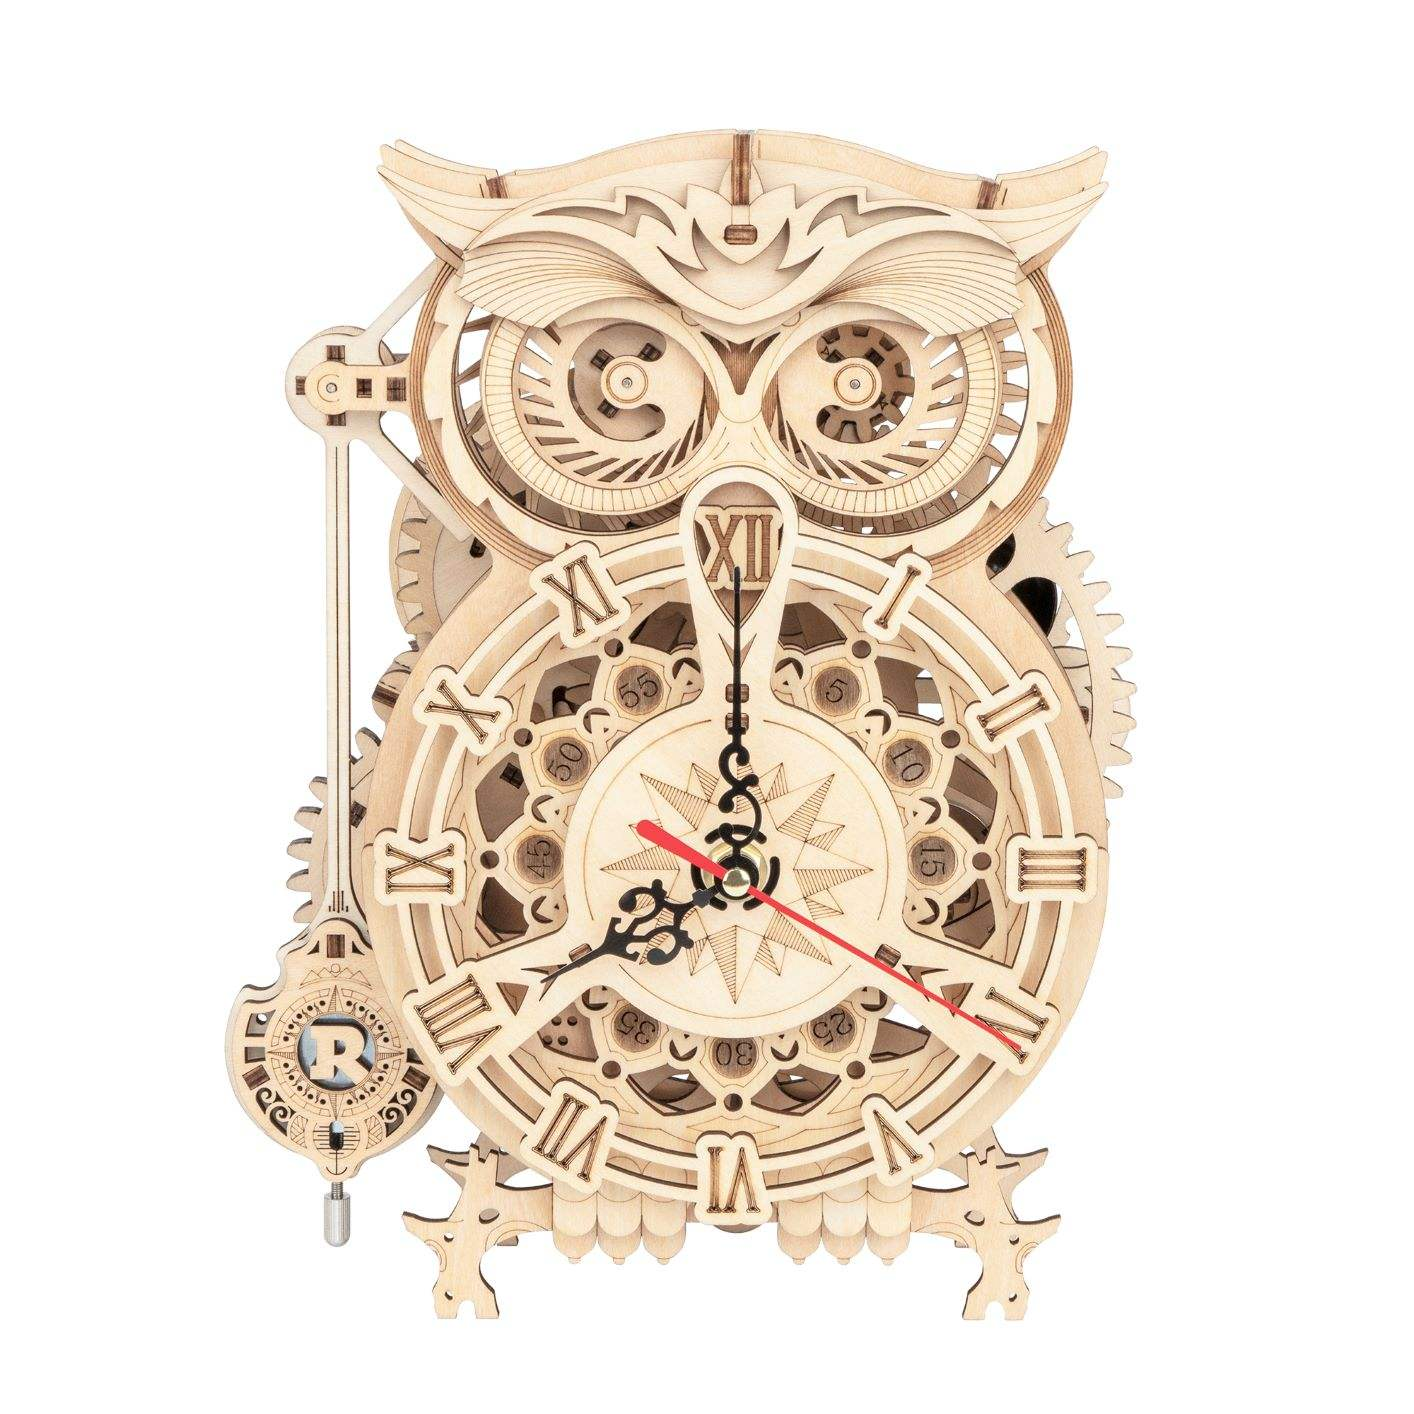 robotime 3d Wooden Puzzle Owl Clock DIY Mechanical Model Kits for Adults